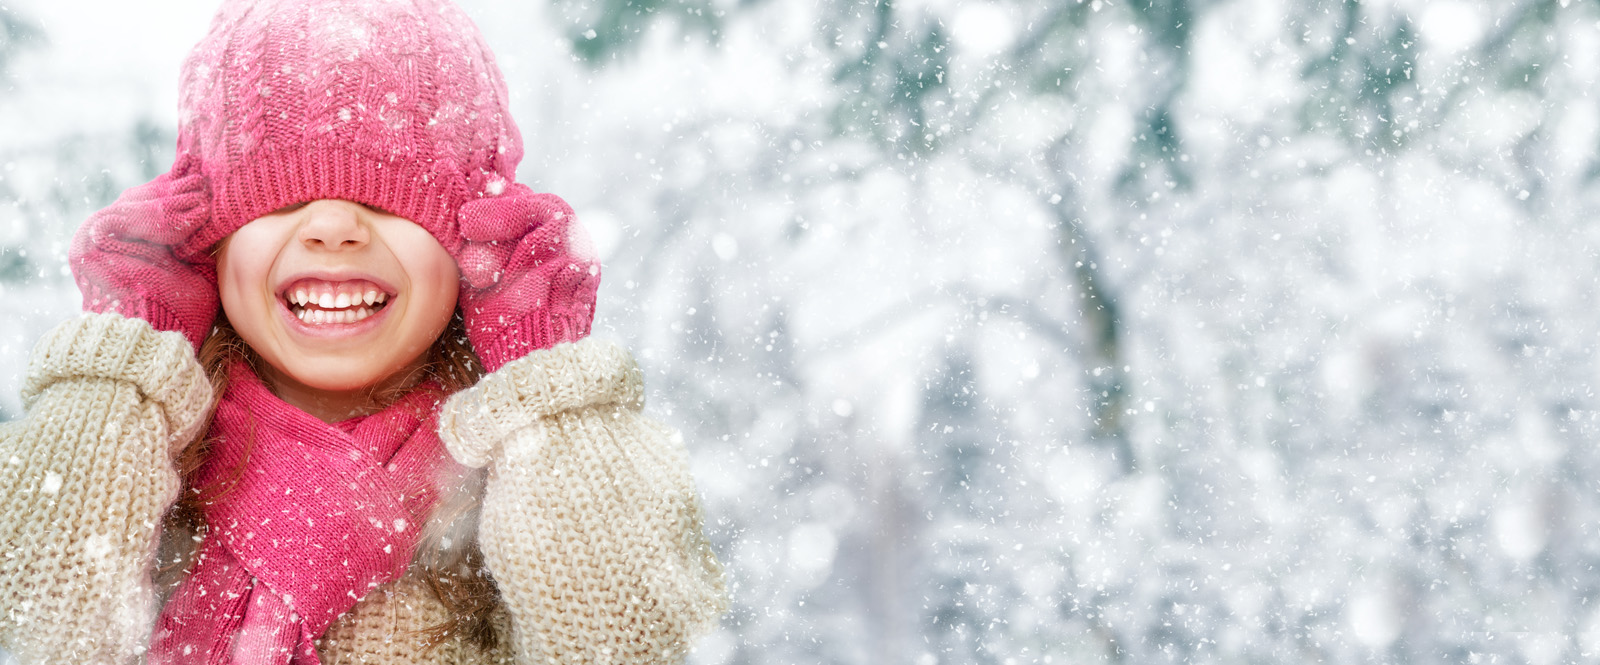 Girl with pink hat in the snow